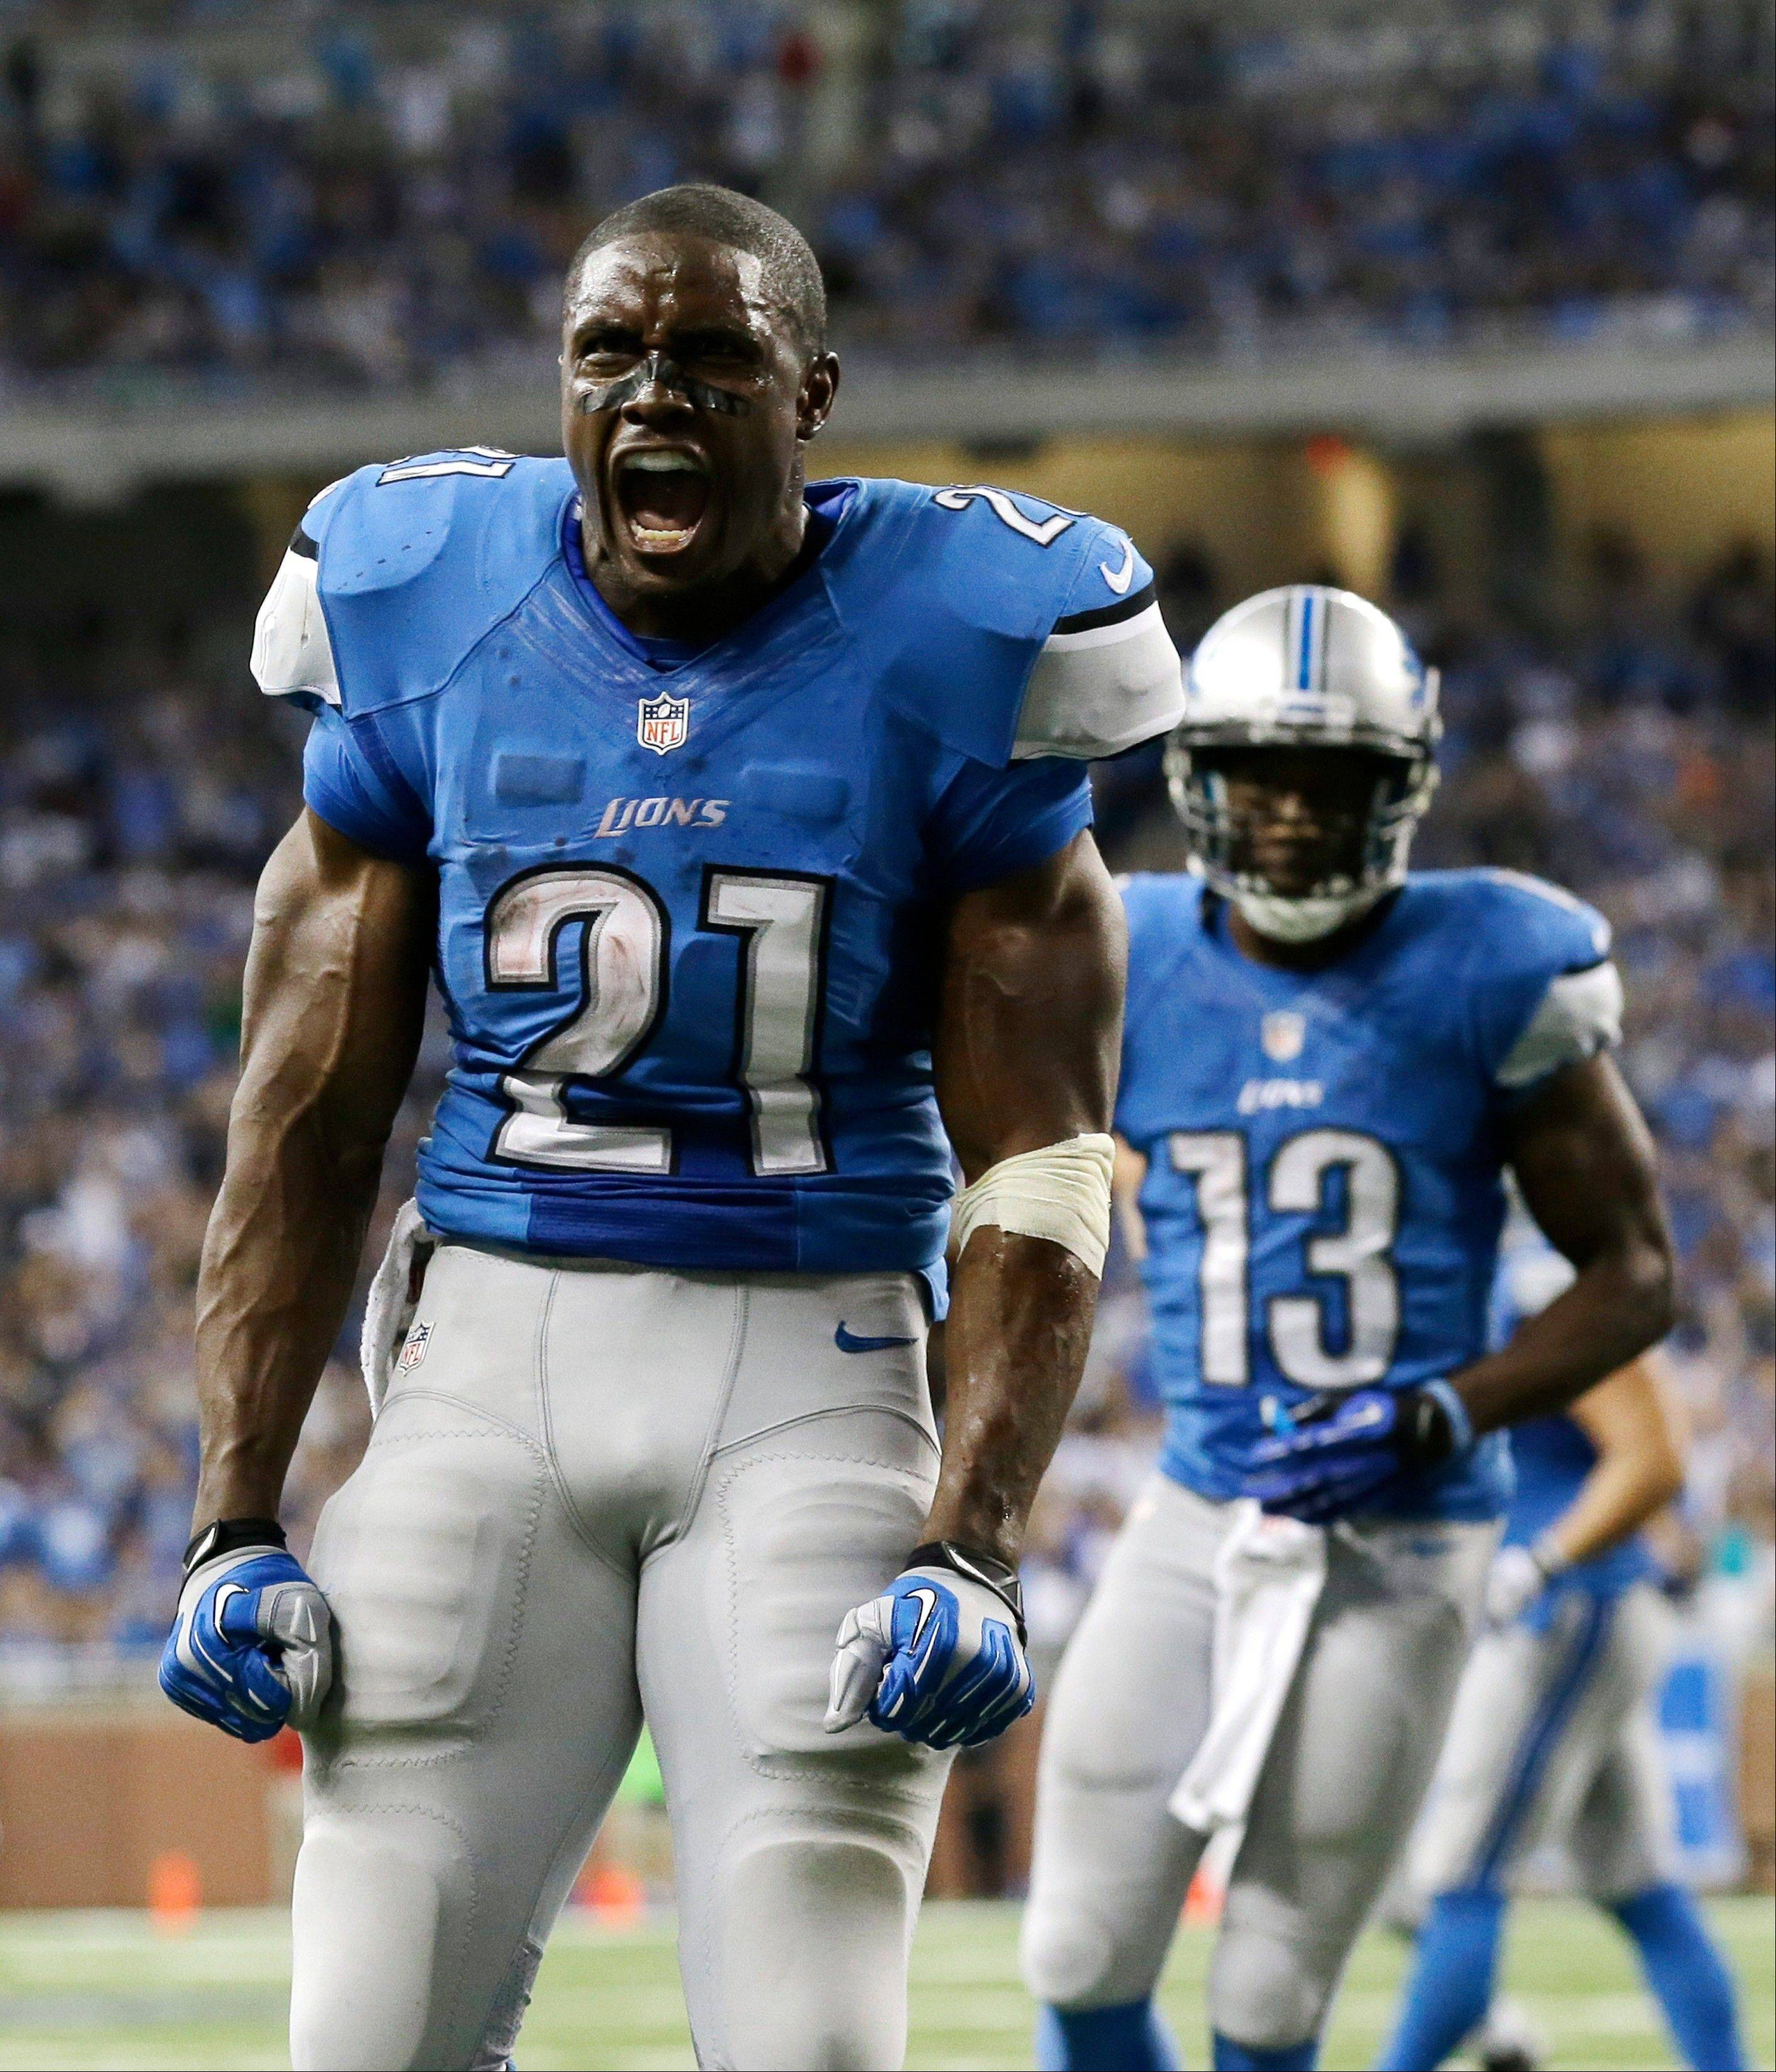 Detroit Lions running back Reggie Bush (21) reacts after scoring during the fourth quarter of an NFL football game against the Minnesota Vikings at Ford Field in Detroit, Sunday, Sept. 8, 2013.